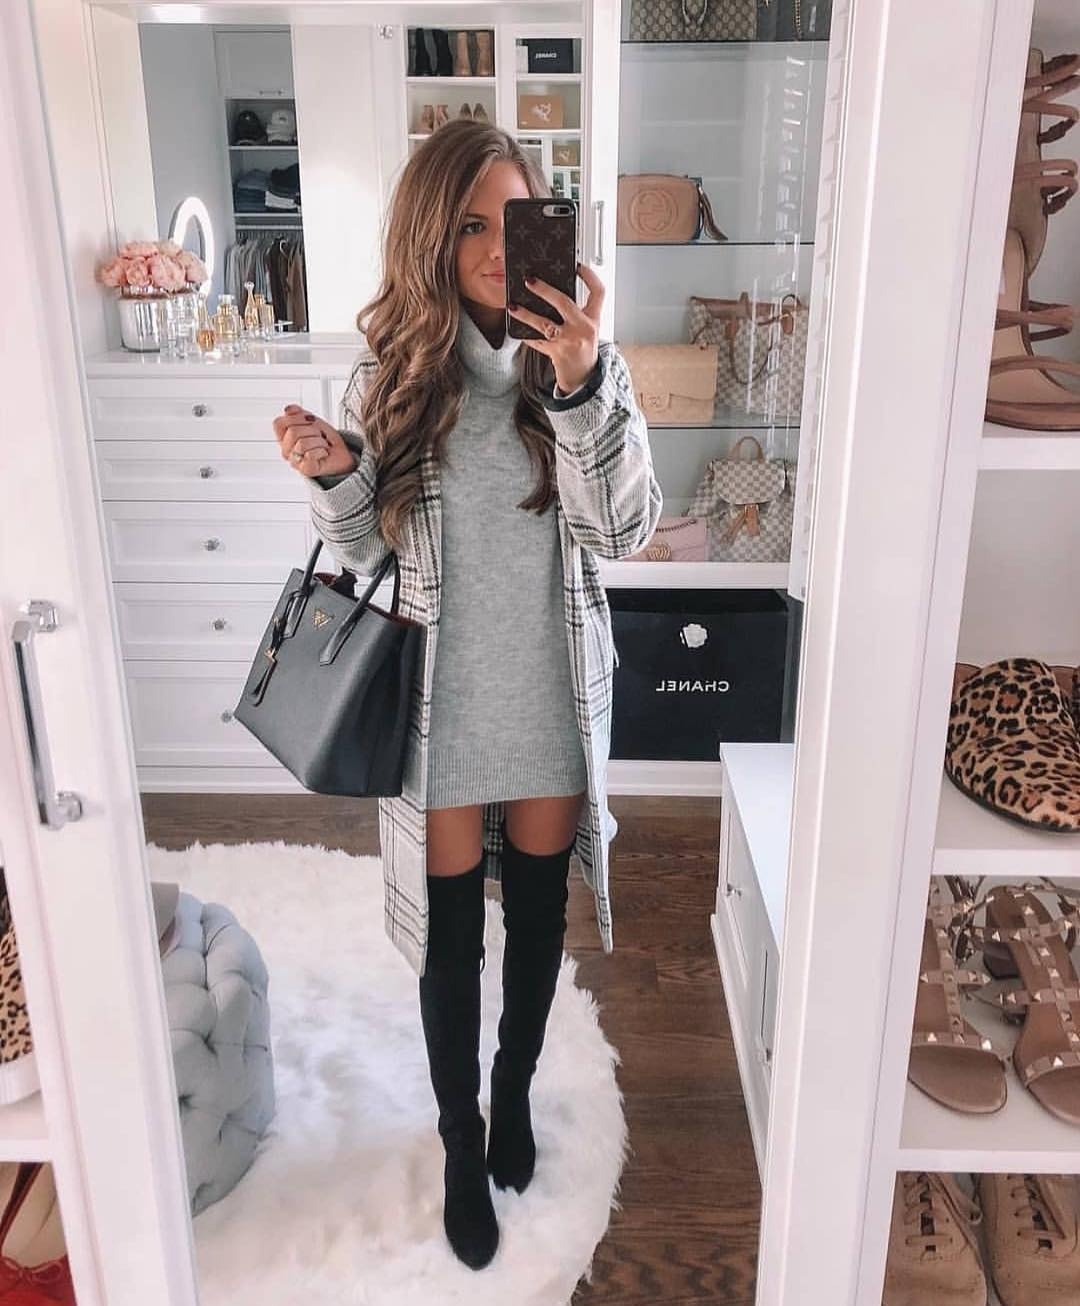 Sweater Dress With Plaid Coat And OTK Boots In Black: Fall Essentials 2019